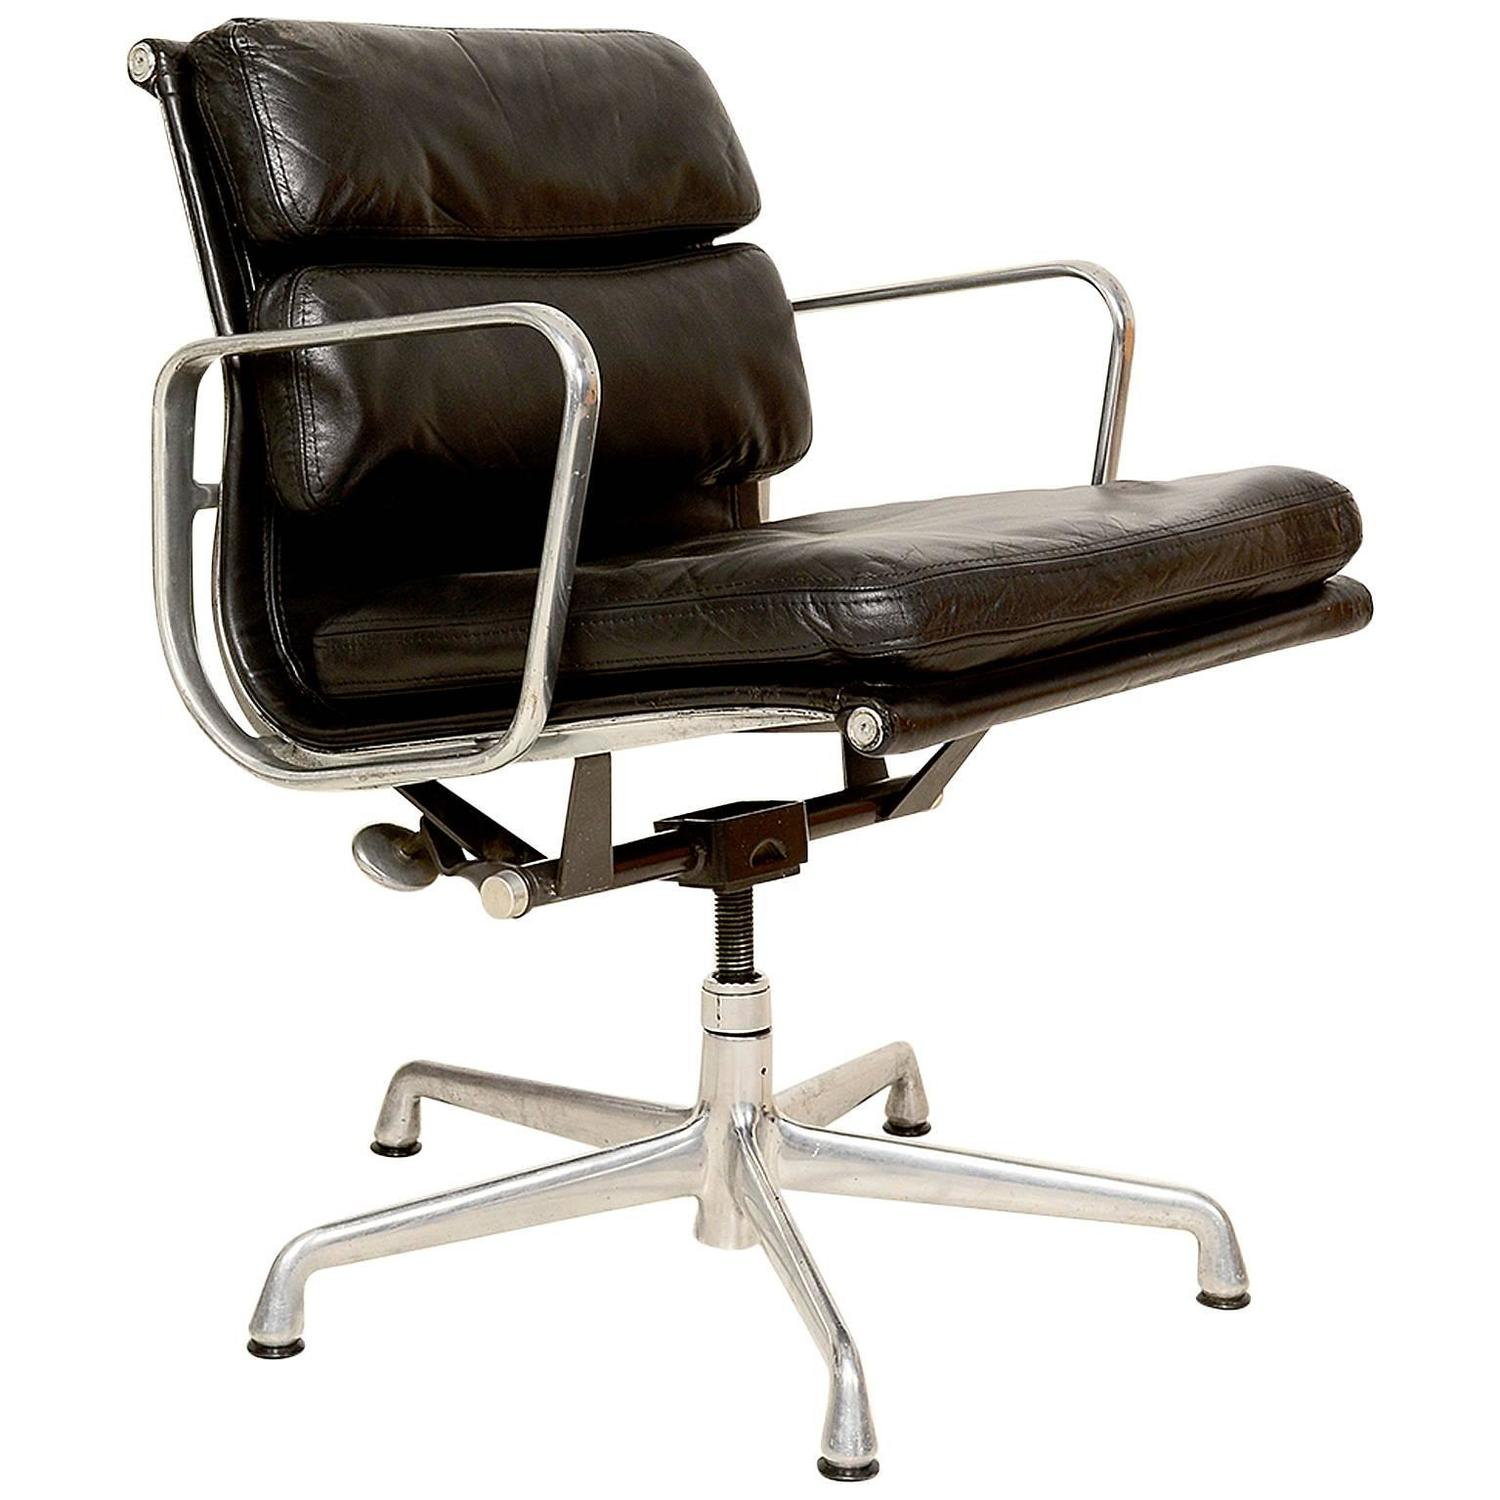 Vintage Herman Miller Eames Soft Pad Aluminum Group Chair For Sale At 1stdibs